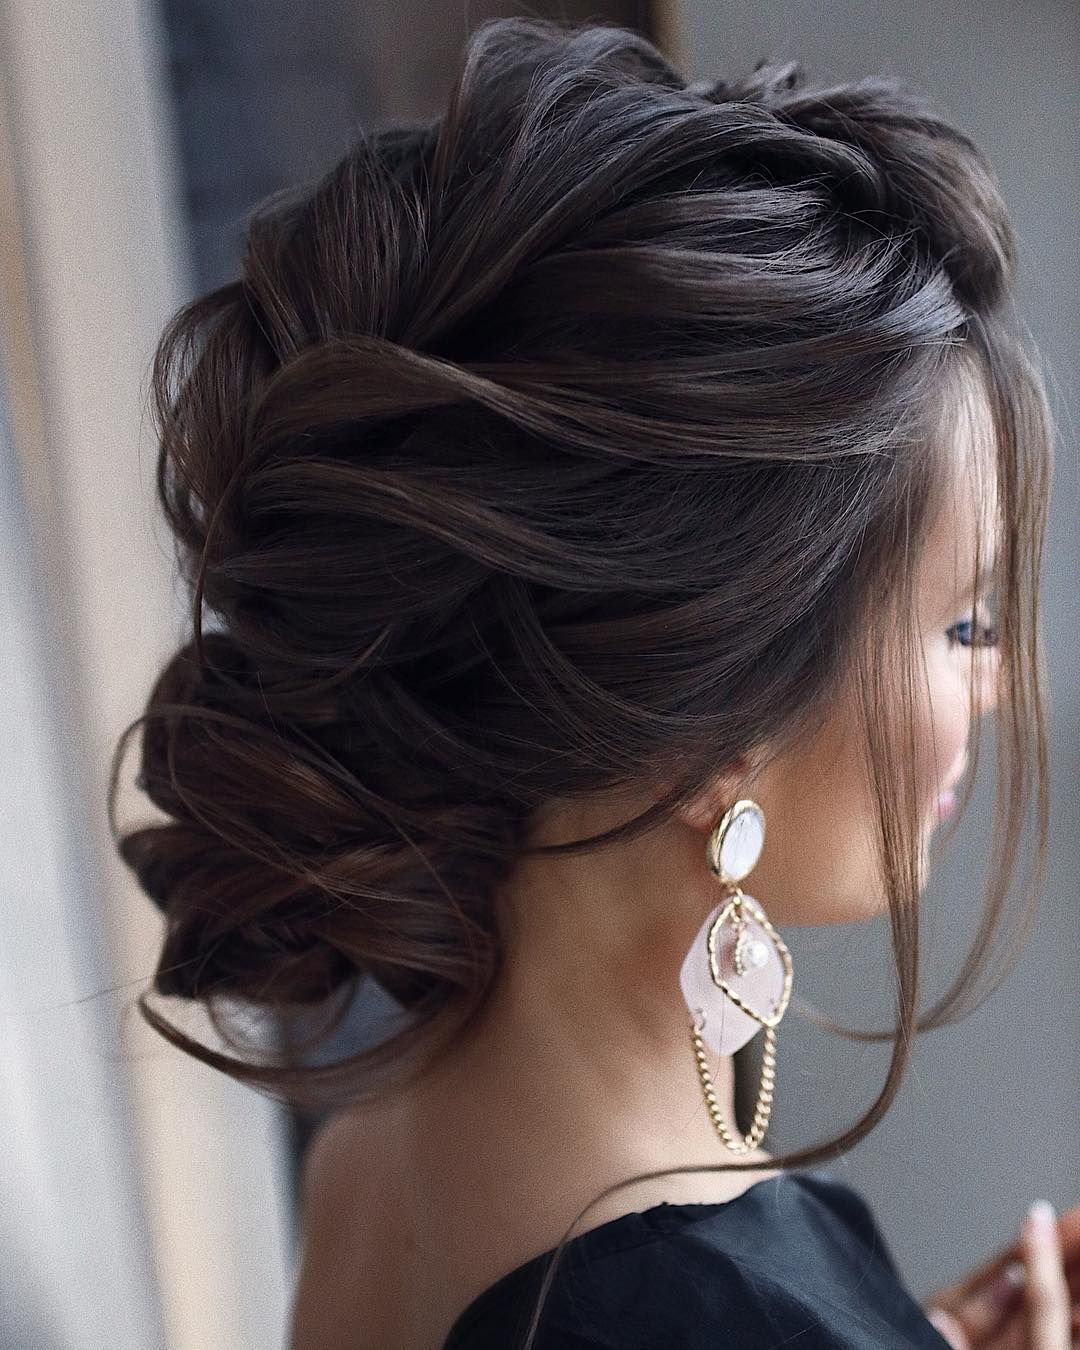 98 Wedding Hairstyles For Brides Black Hair Updo Hairstyles For Wedding Half Up Half Down Hairstyles Hair Styles Long Hair Styles Wedding Hair Inspiration